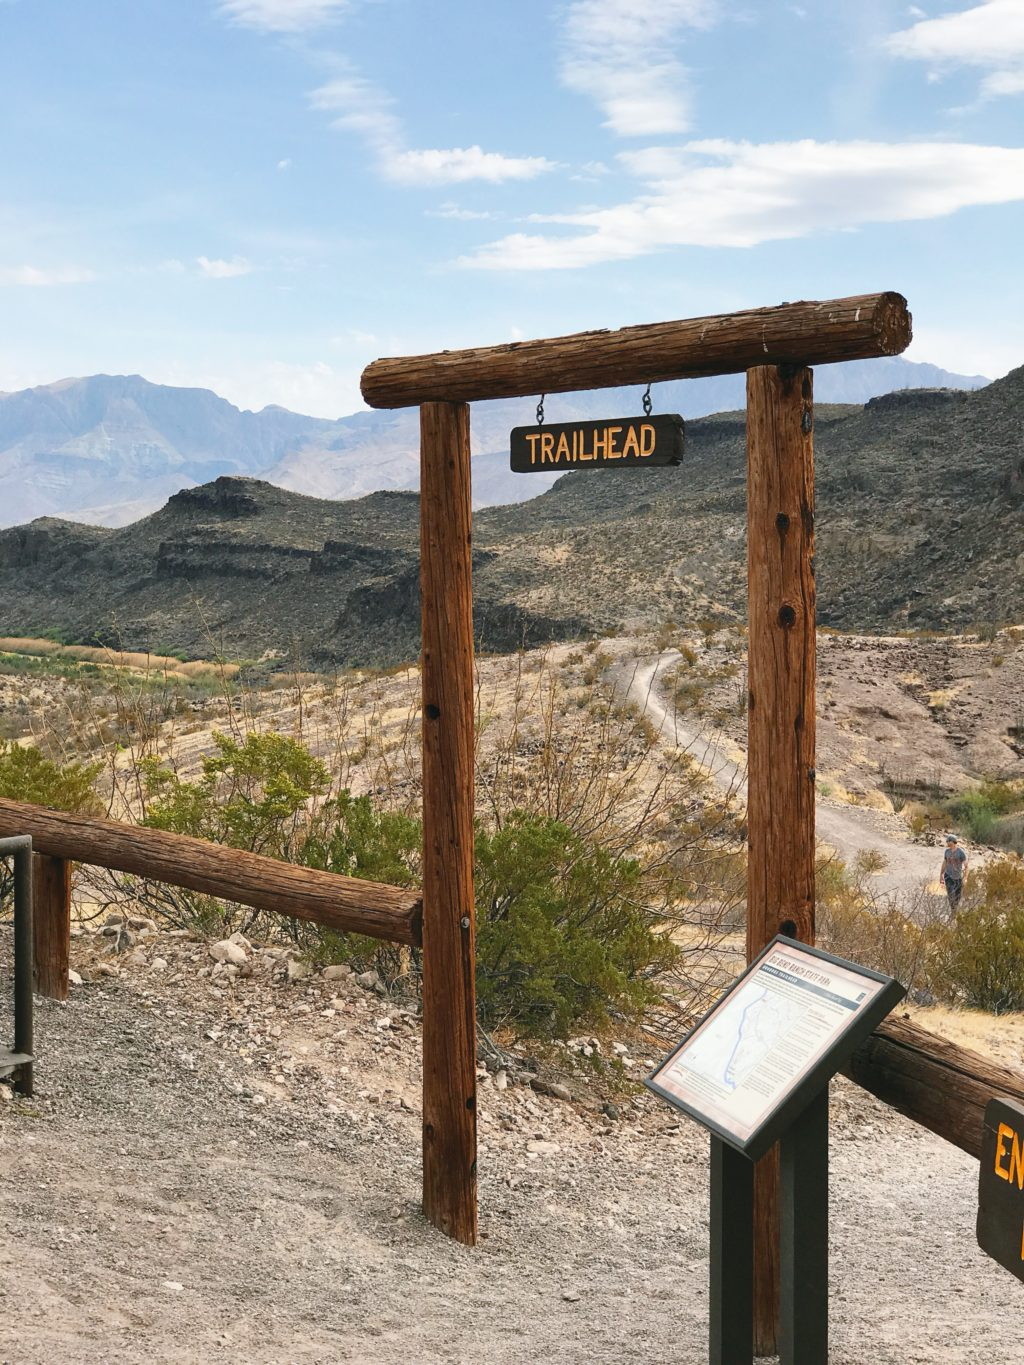 trailhead in big bend national park texas